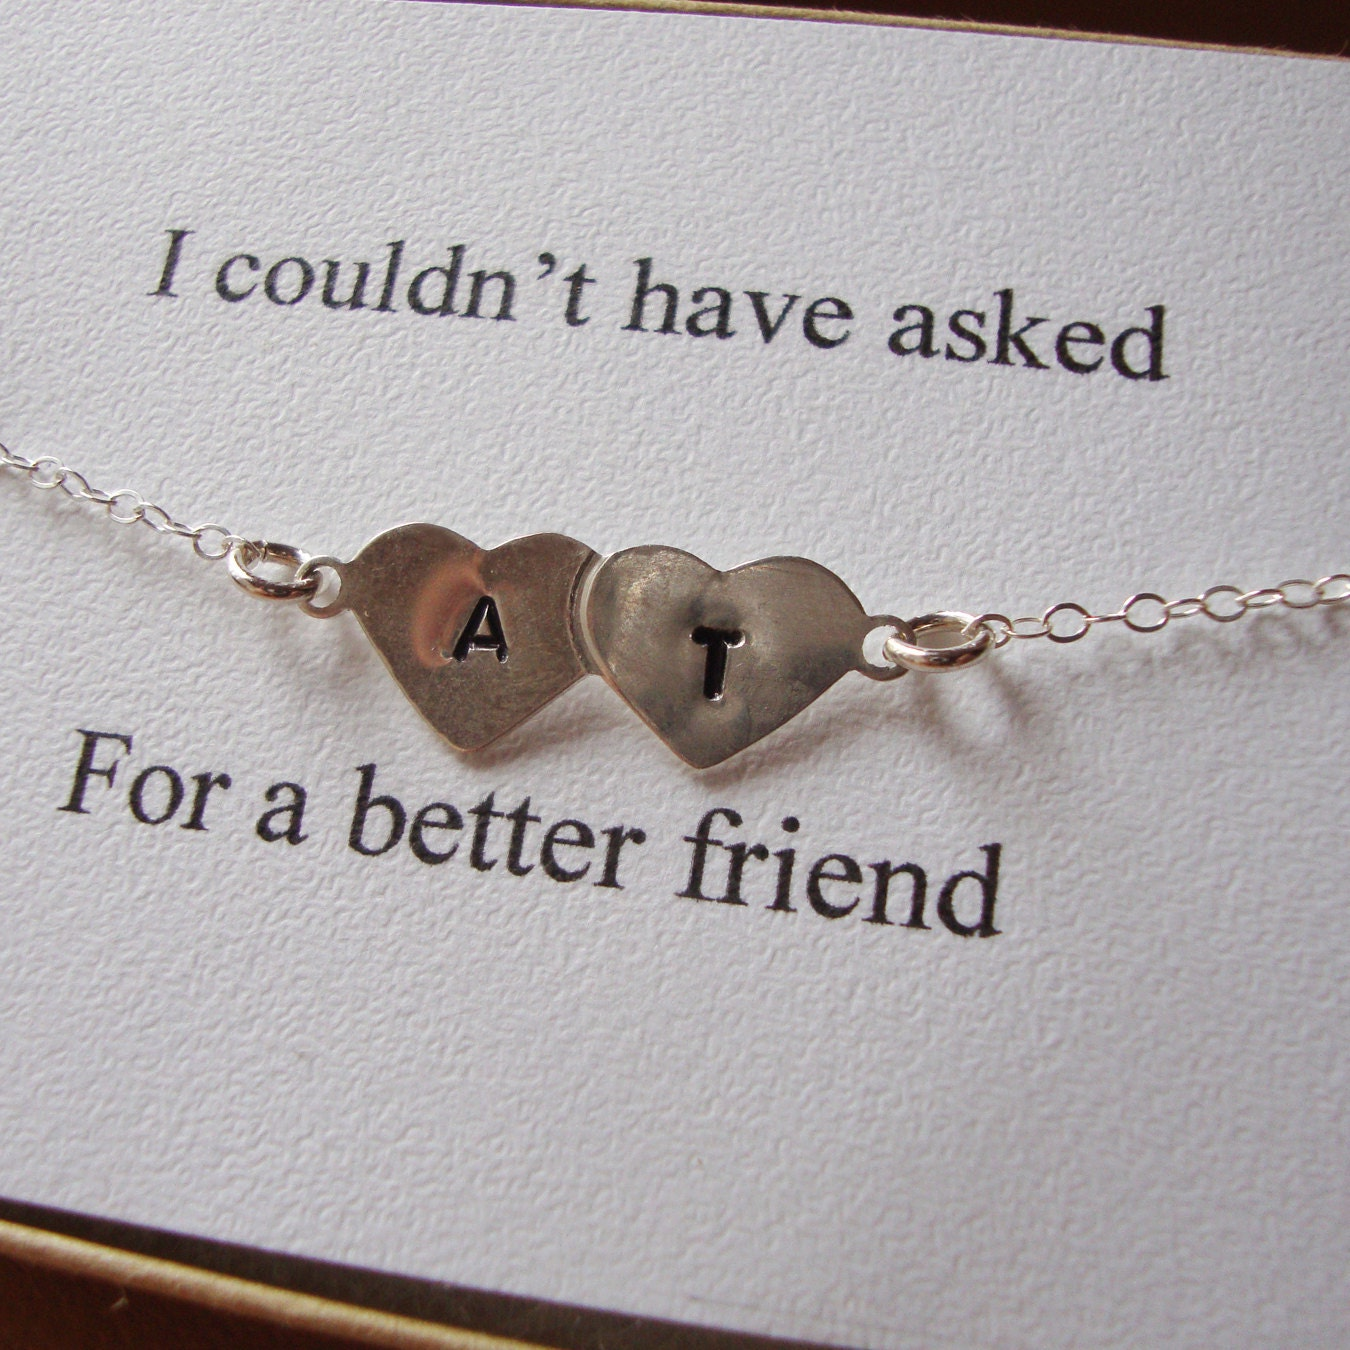 Wedding Gift Ideas For Best Friend Girl: Best Friends Bracelet Hand Stamped Hearts Engraved Initials